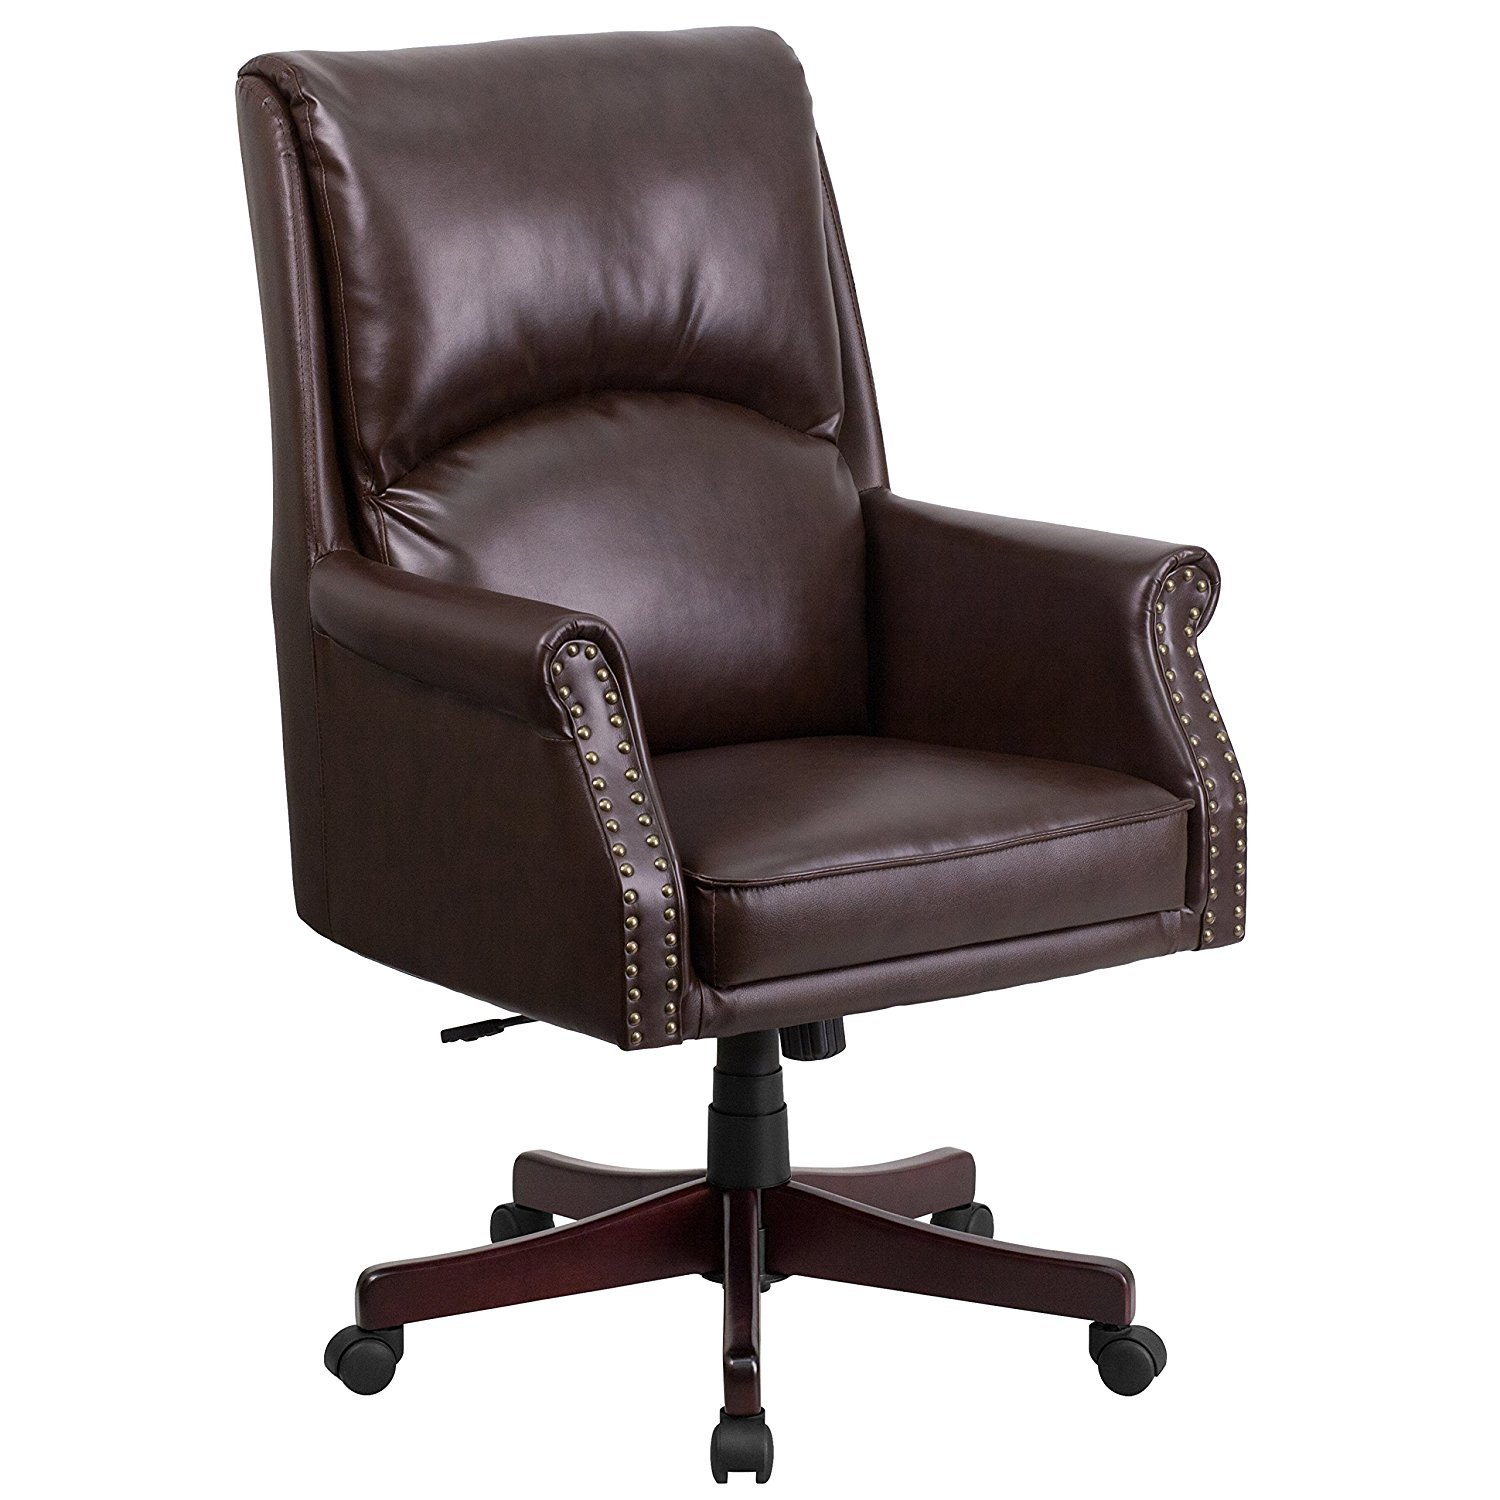 Best Desk Chair For Lower Back Pain Best Executive Chair For Lower Back Pain Home Furniture